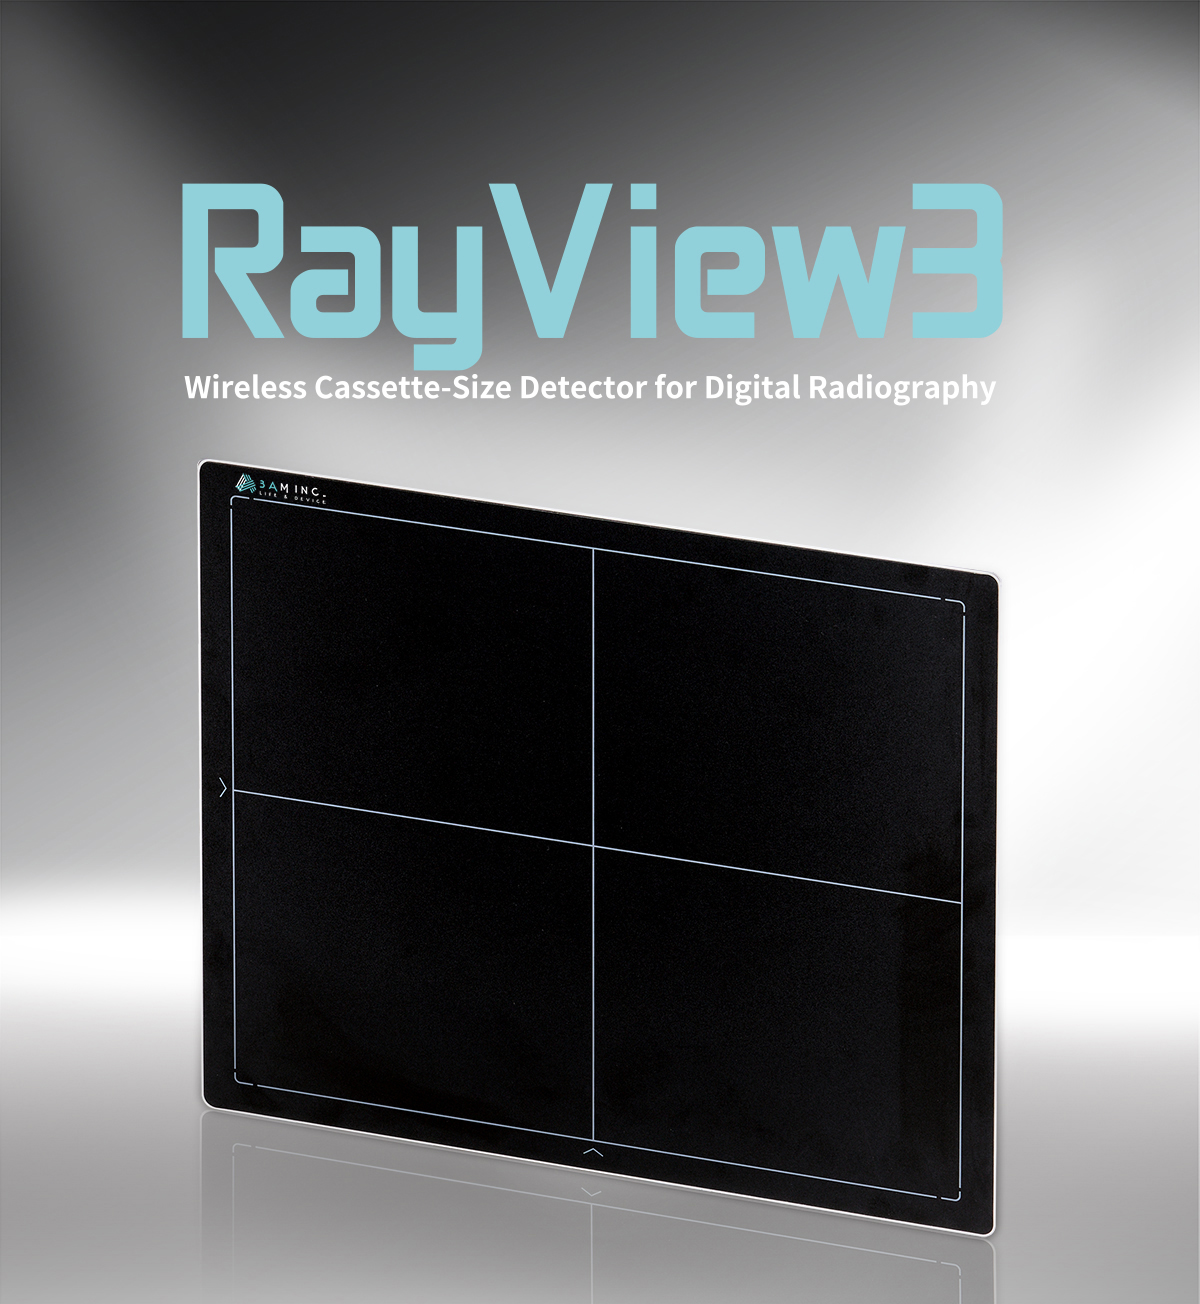 rayview3_title_1